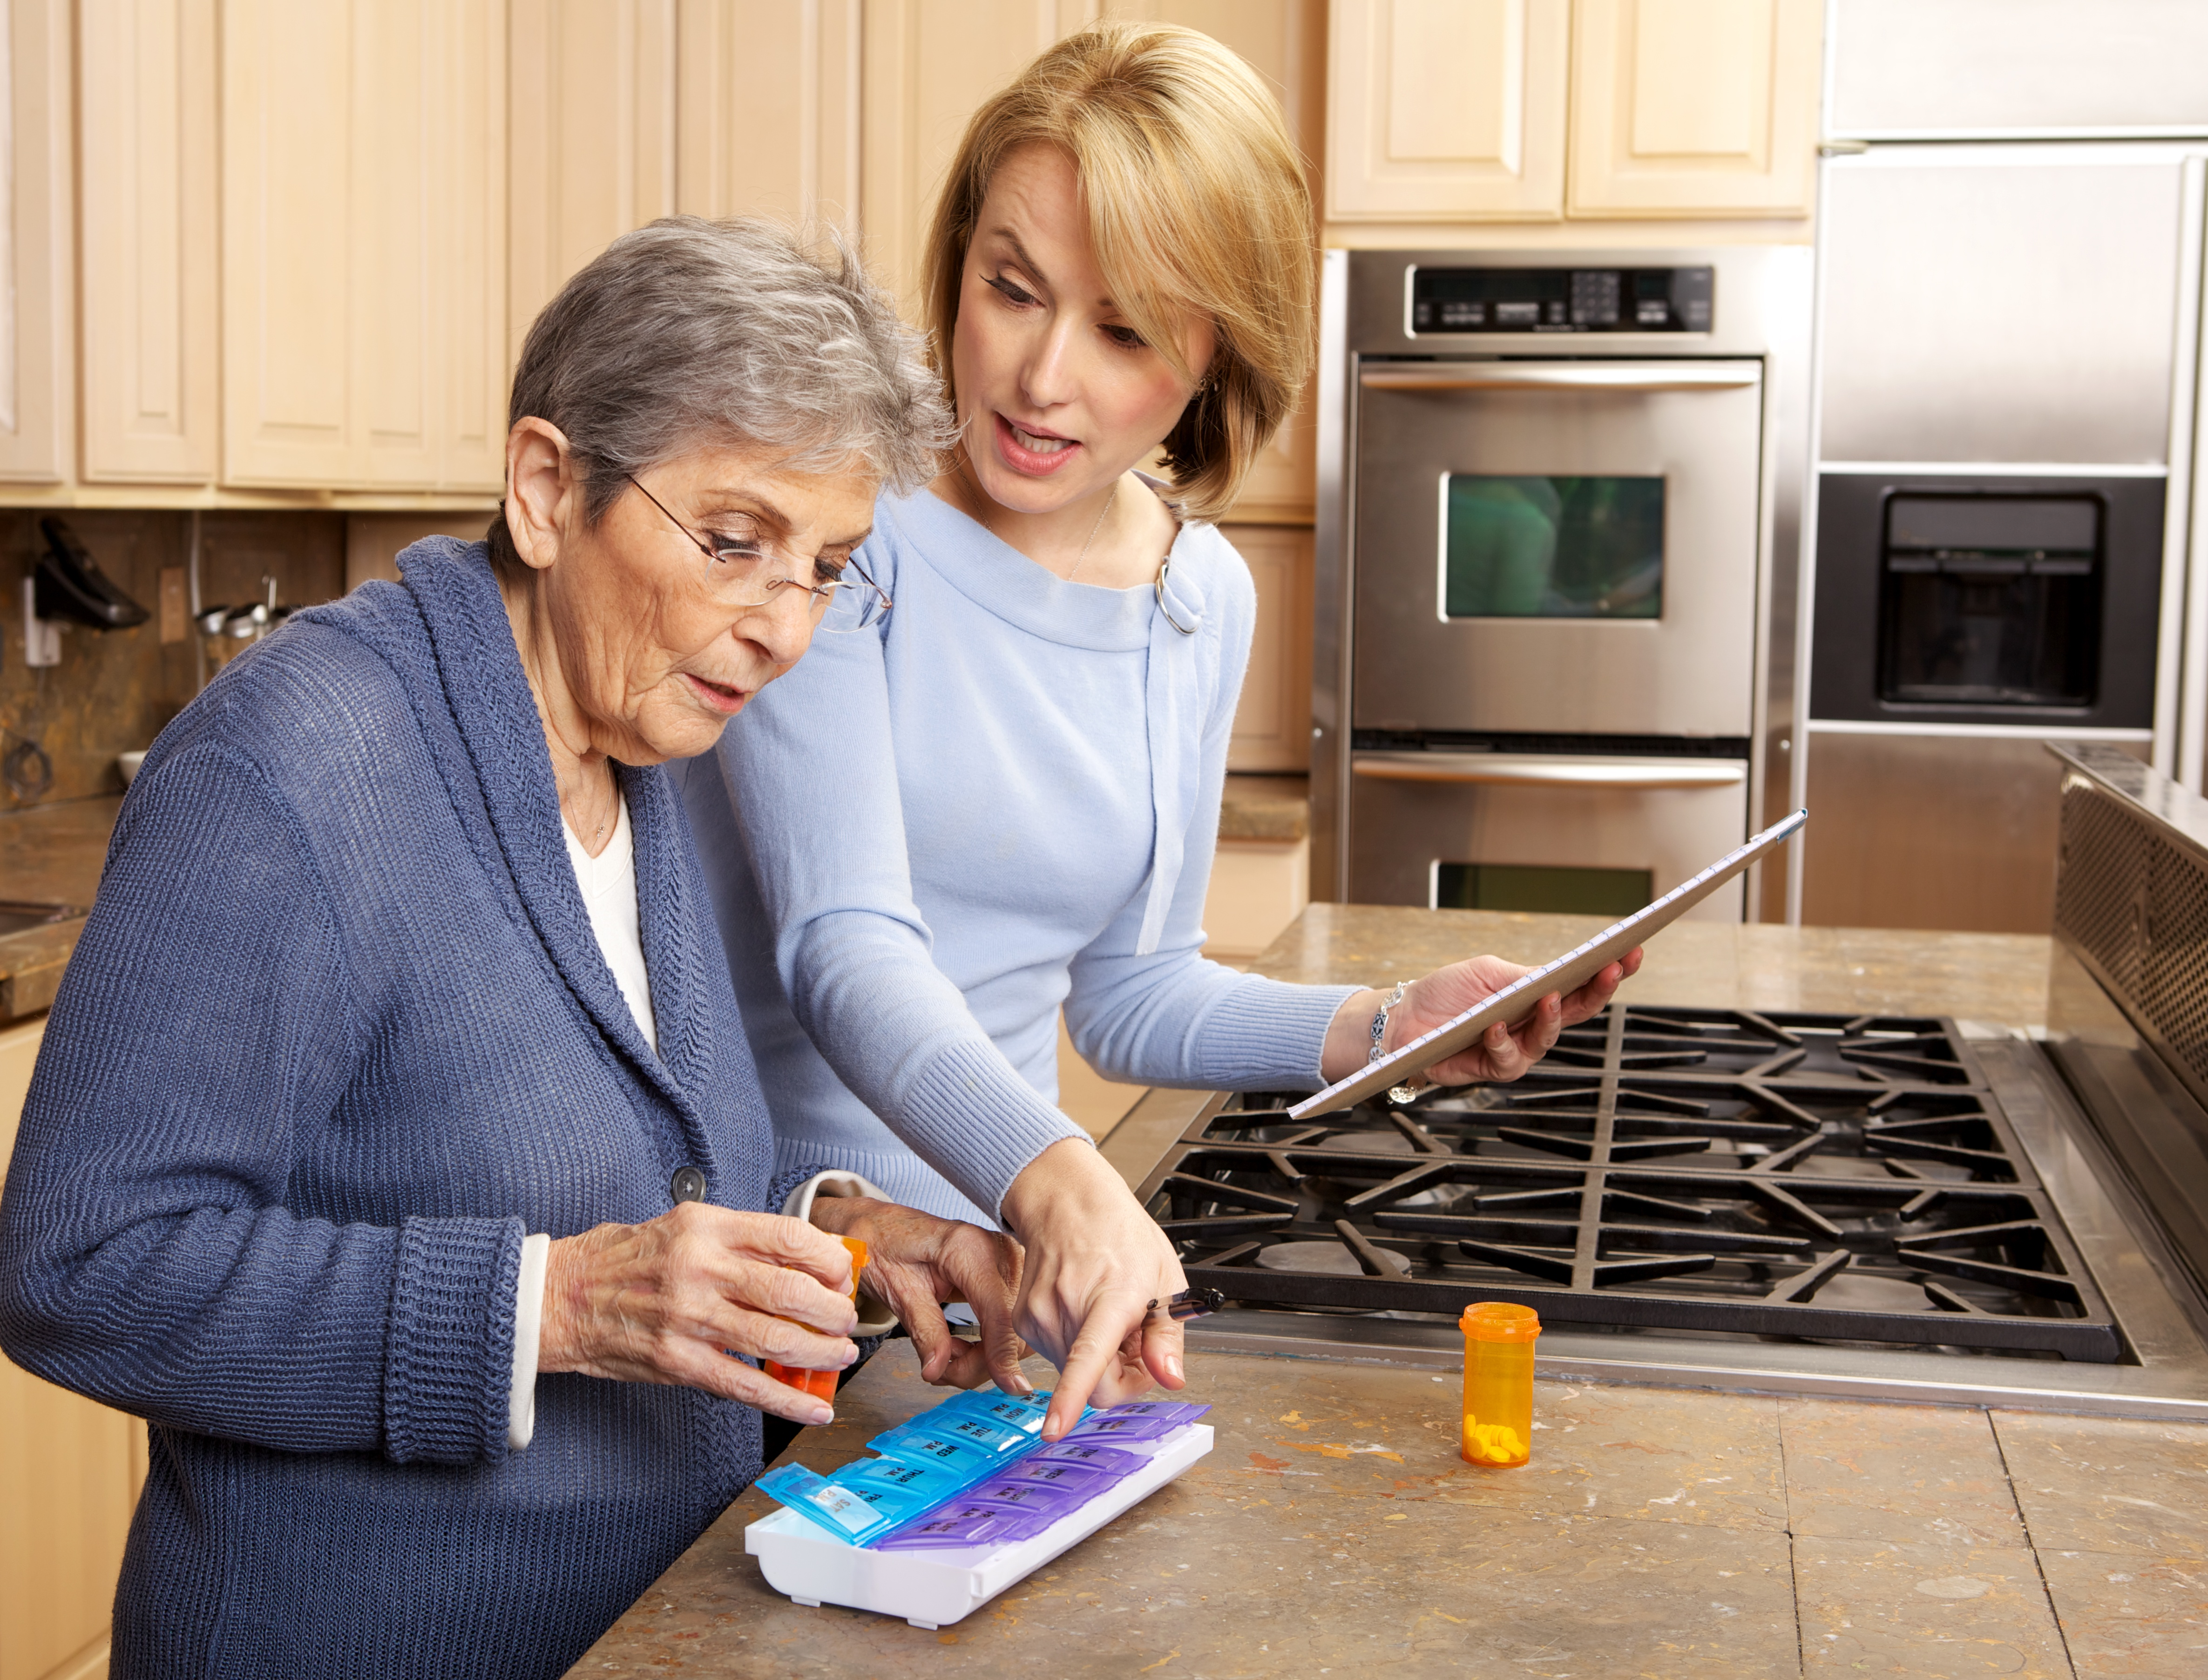 Family caregiver managing medications for a parent with dementia